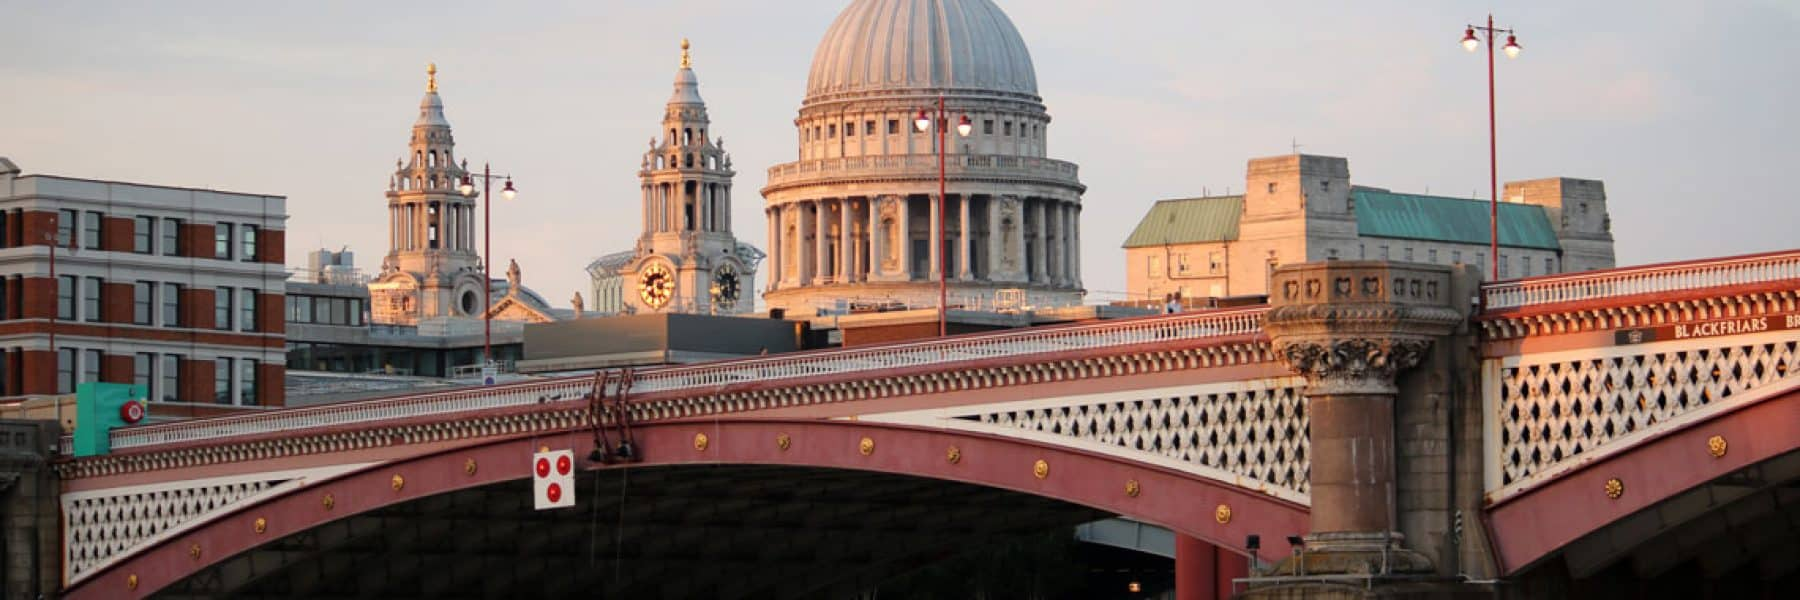 St. Paul's Cathedral & Blackfriars Road Bridge at dusk